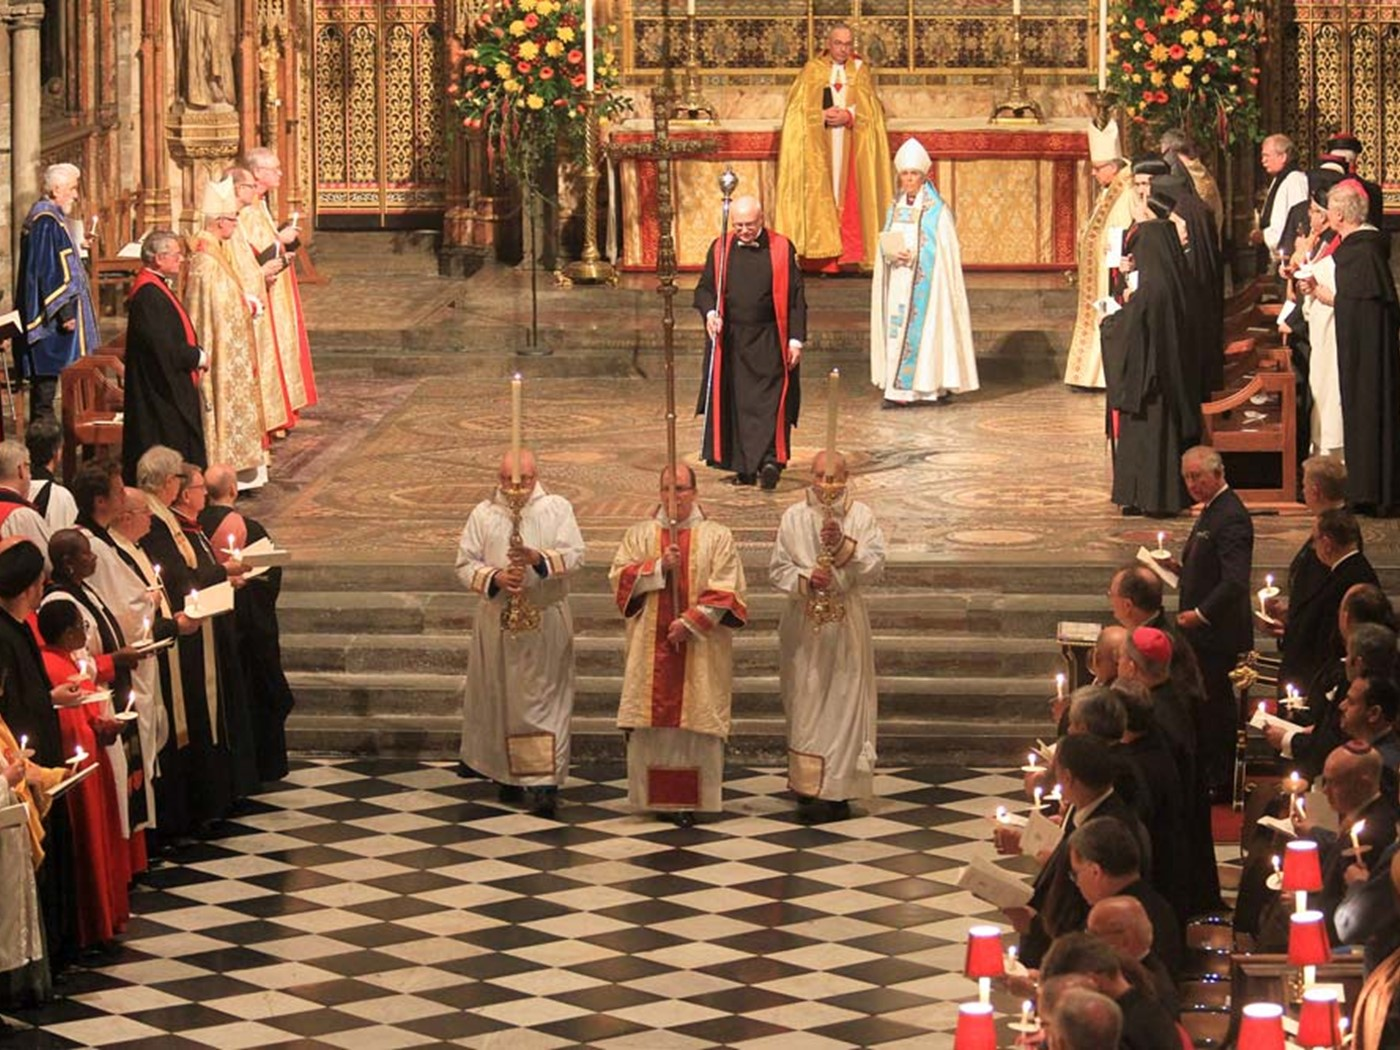 The procession moves through the church at the end of the service